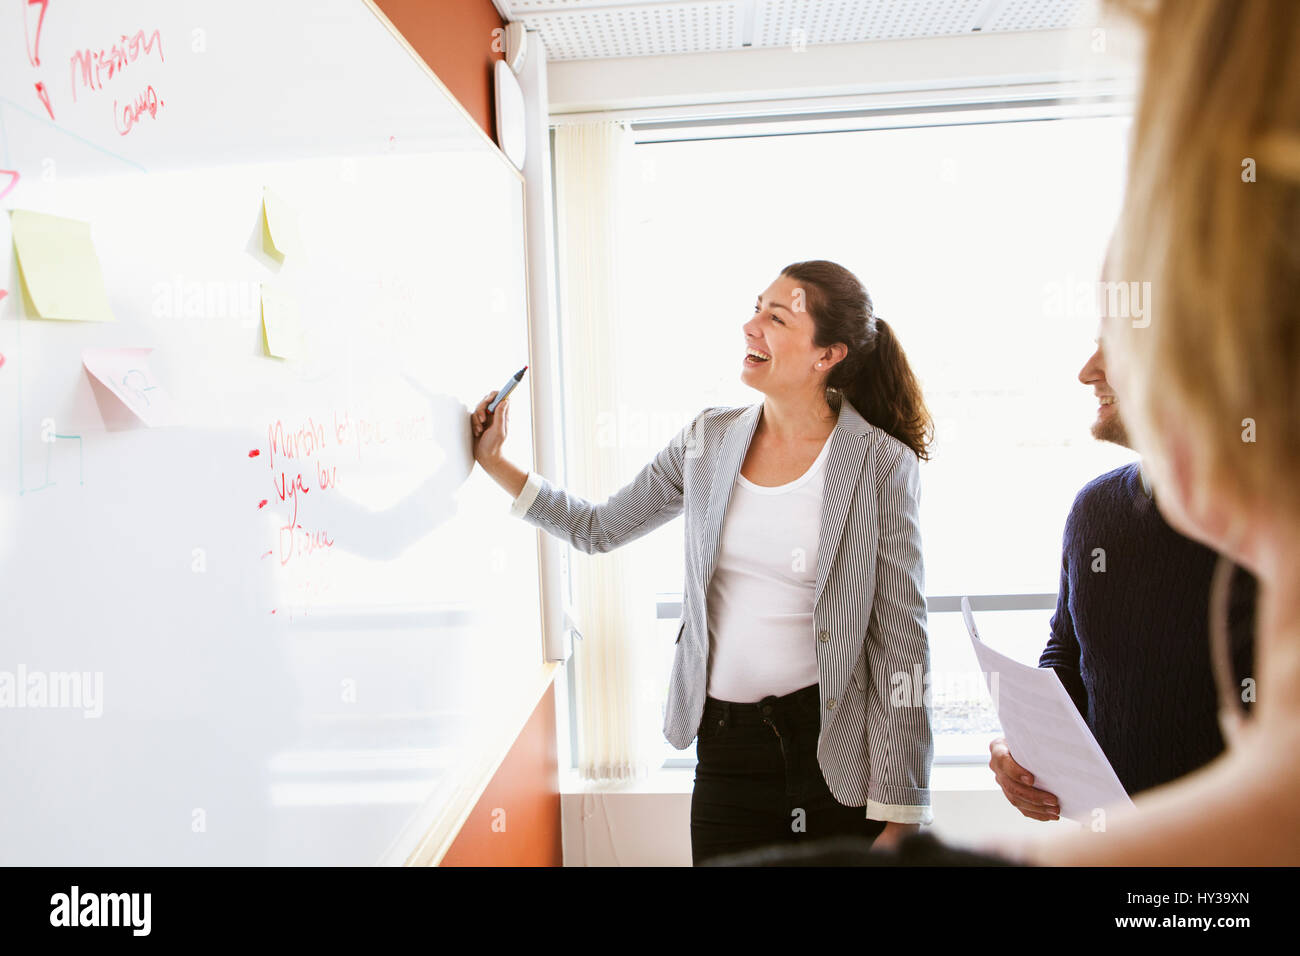 Sweden, Businesswoman standing at board and laughing during business meeting - Stock Image